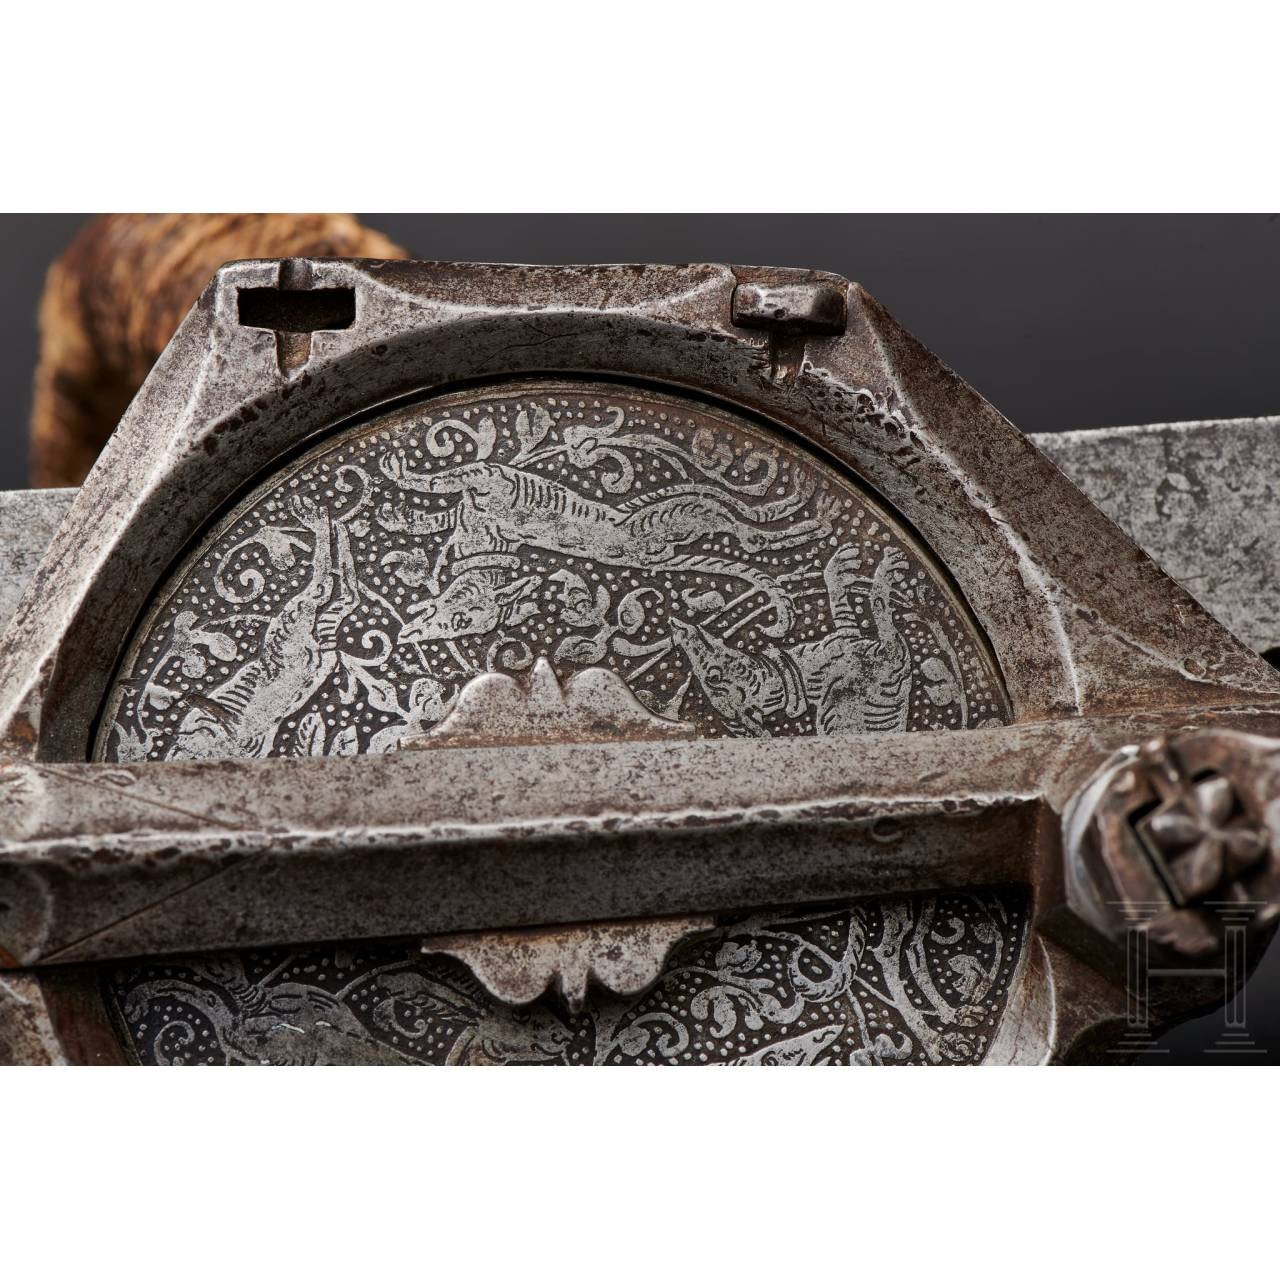 A Nuremberg crossbow winch with etched decoration, dated 1584